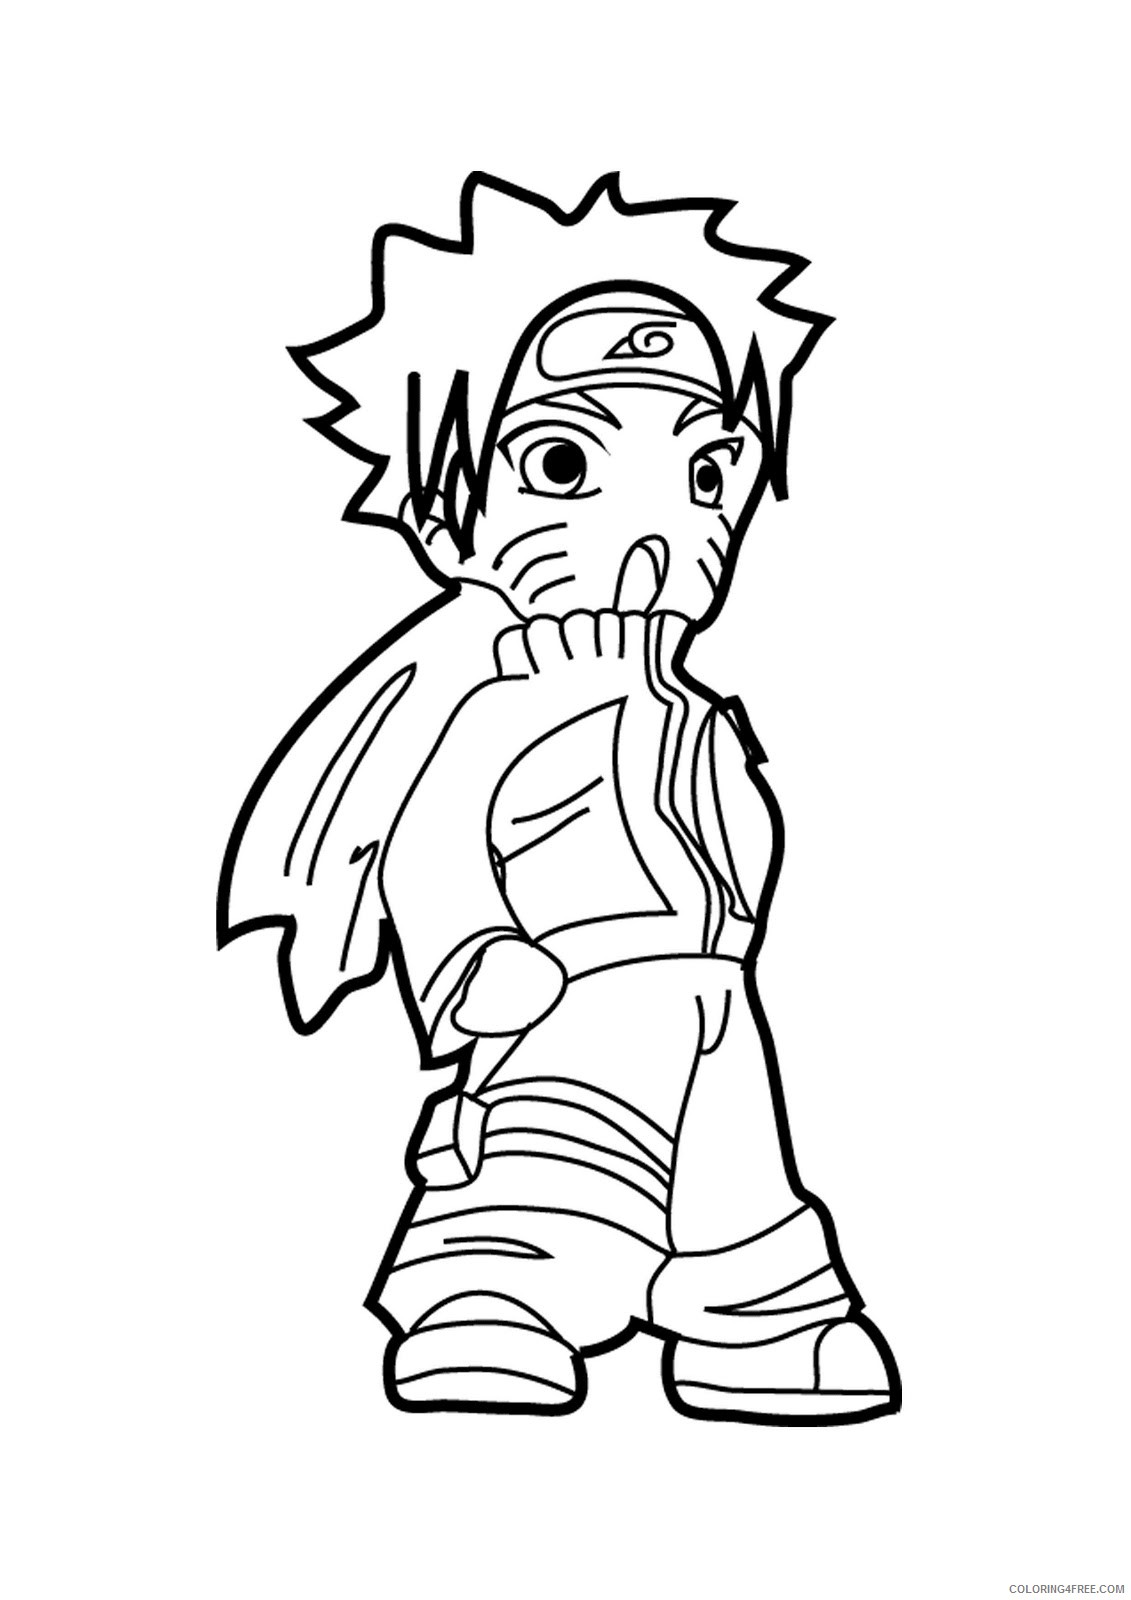 coloring pages of naruto naruto coloring pages free printable naruto coloring pages naruto pages of coloring